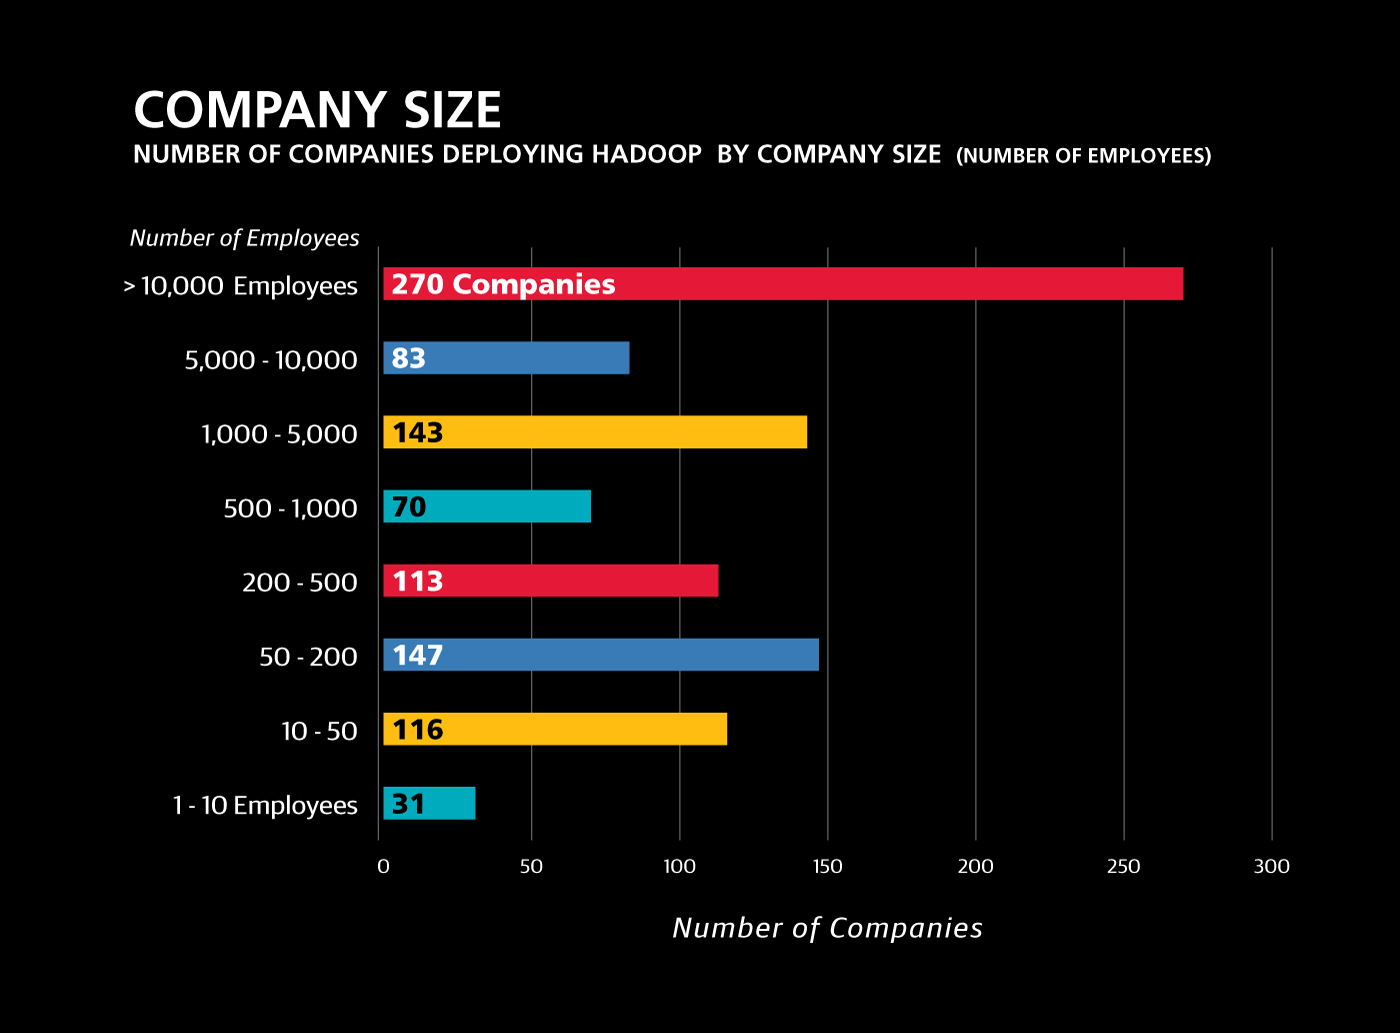 The most mature Hadoop users company size